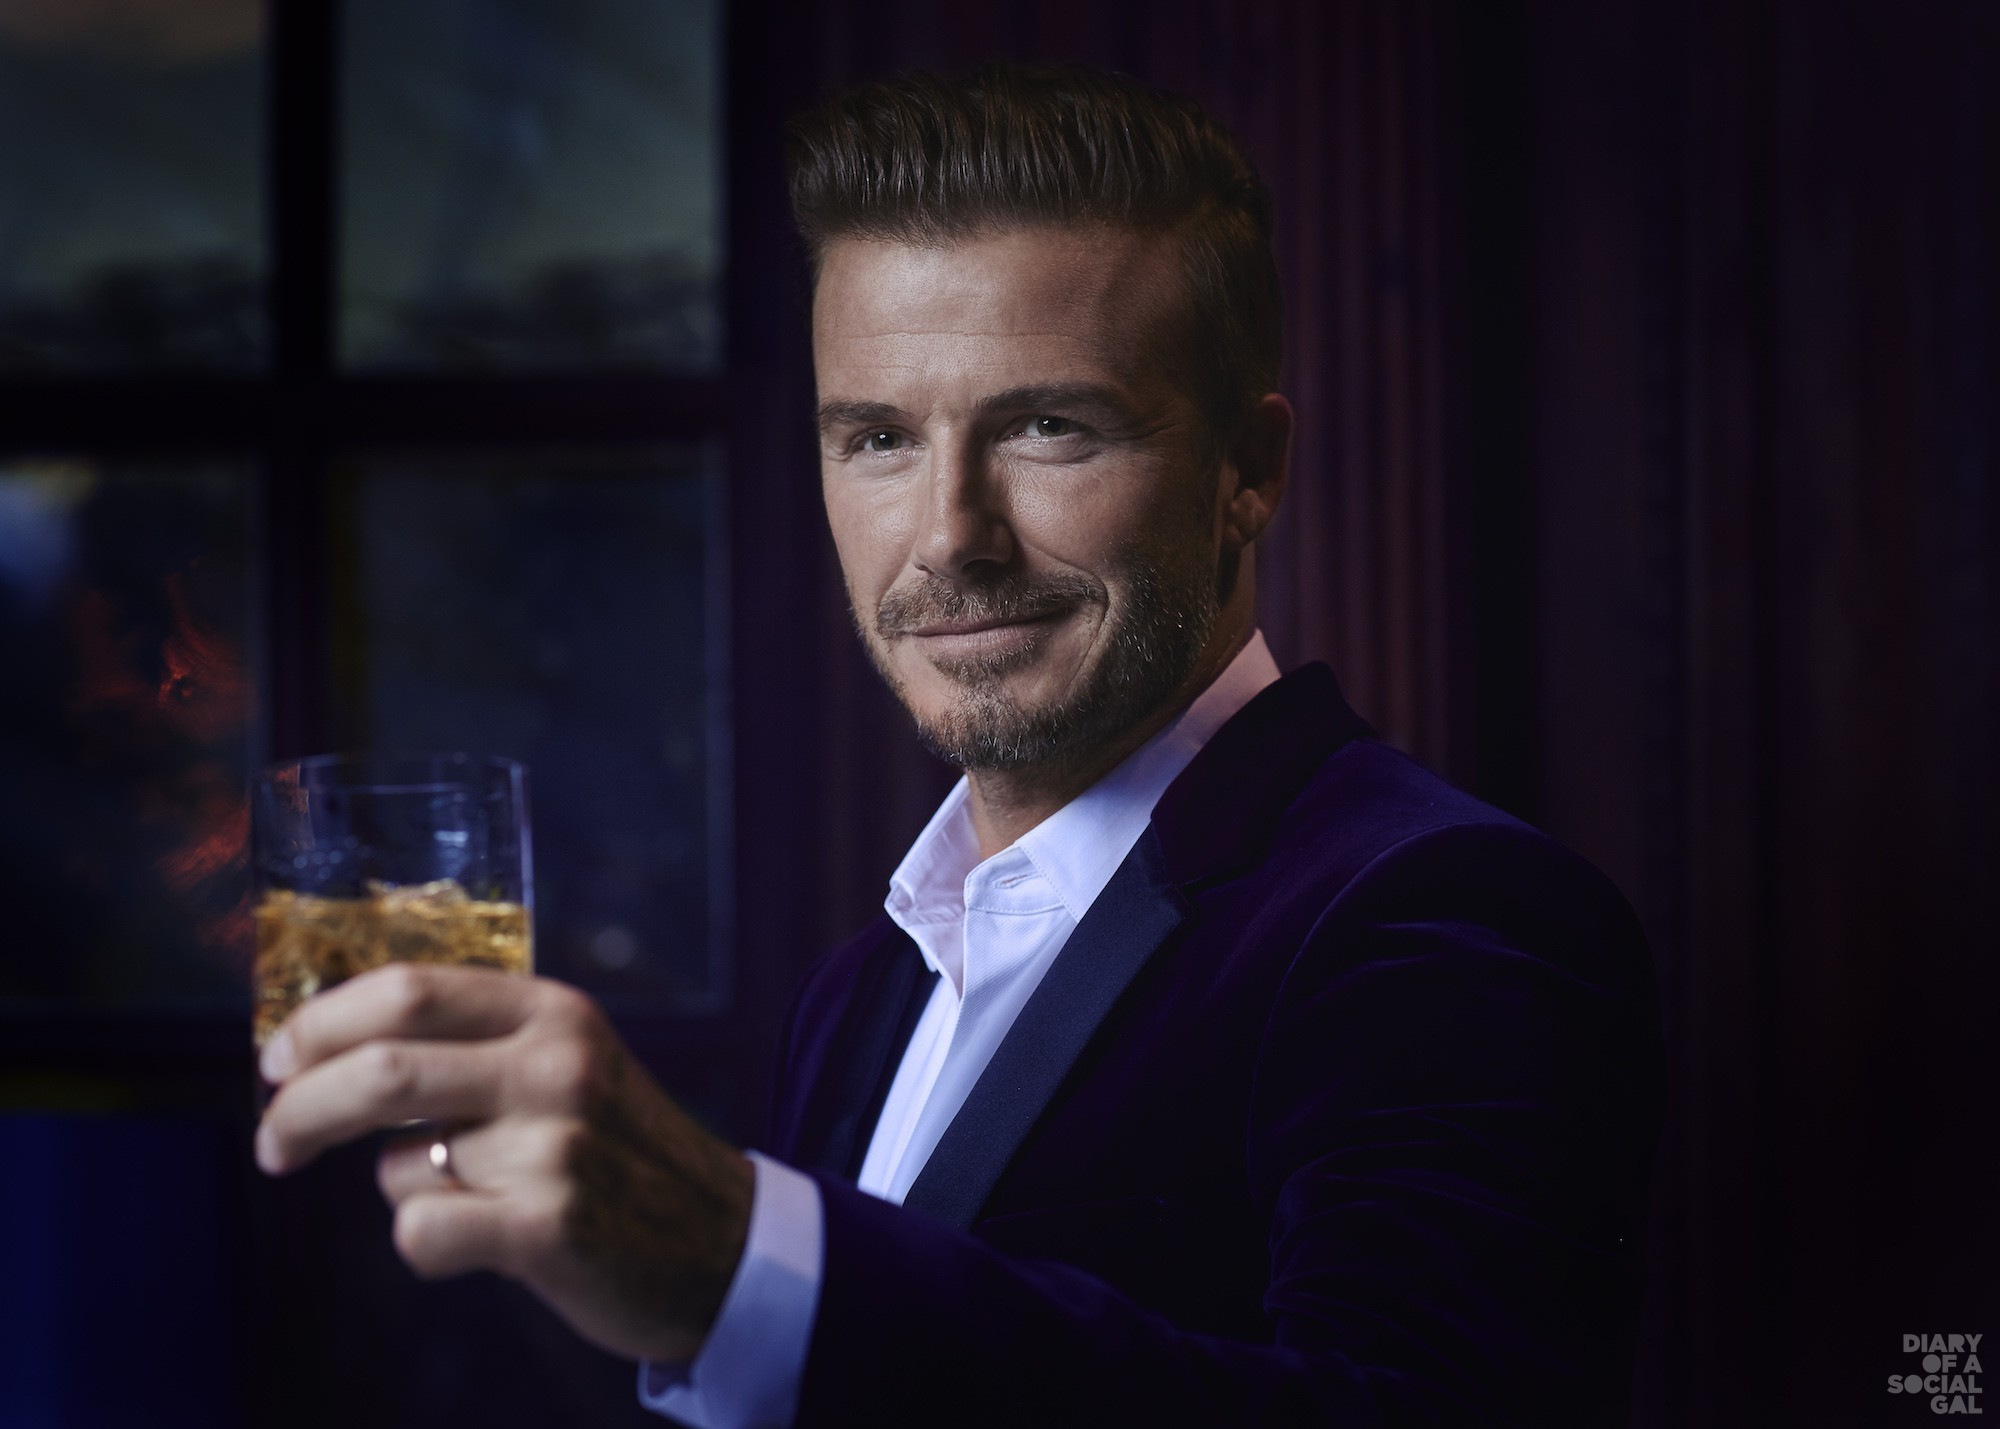 david-beckham-toasts-to-the-global-launch-of-haig-clube284a2-welcome-to-haig-clube284a2-e28093-enjoy-responsibly